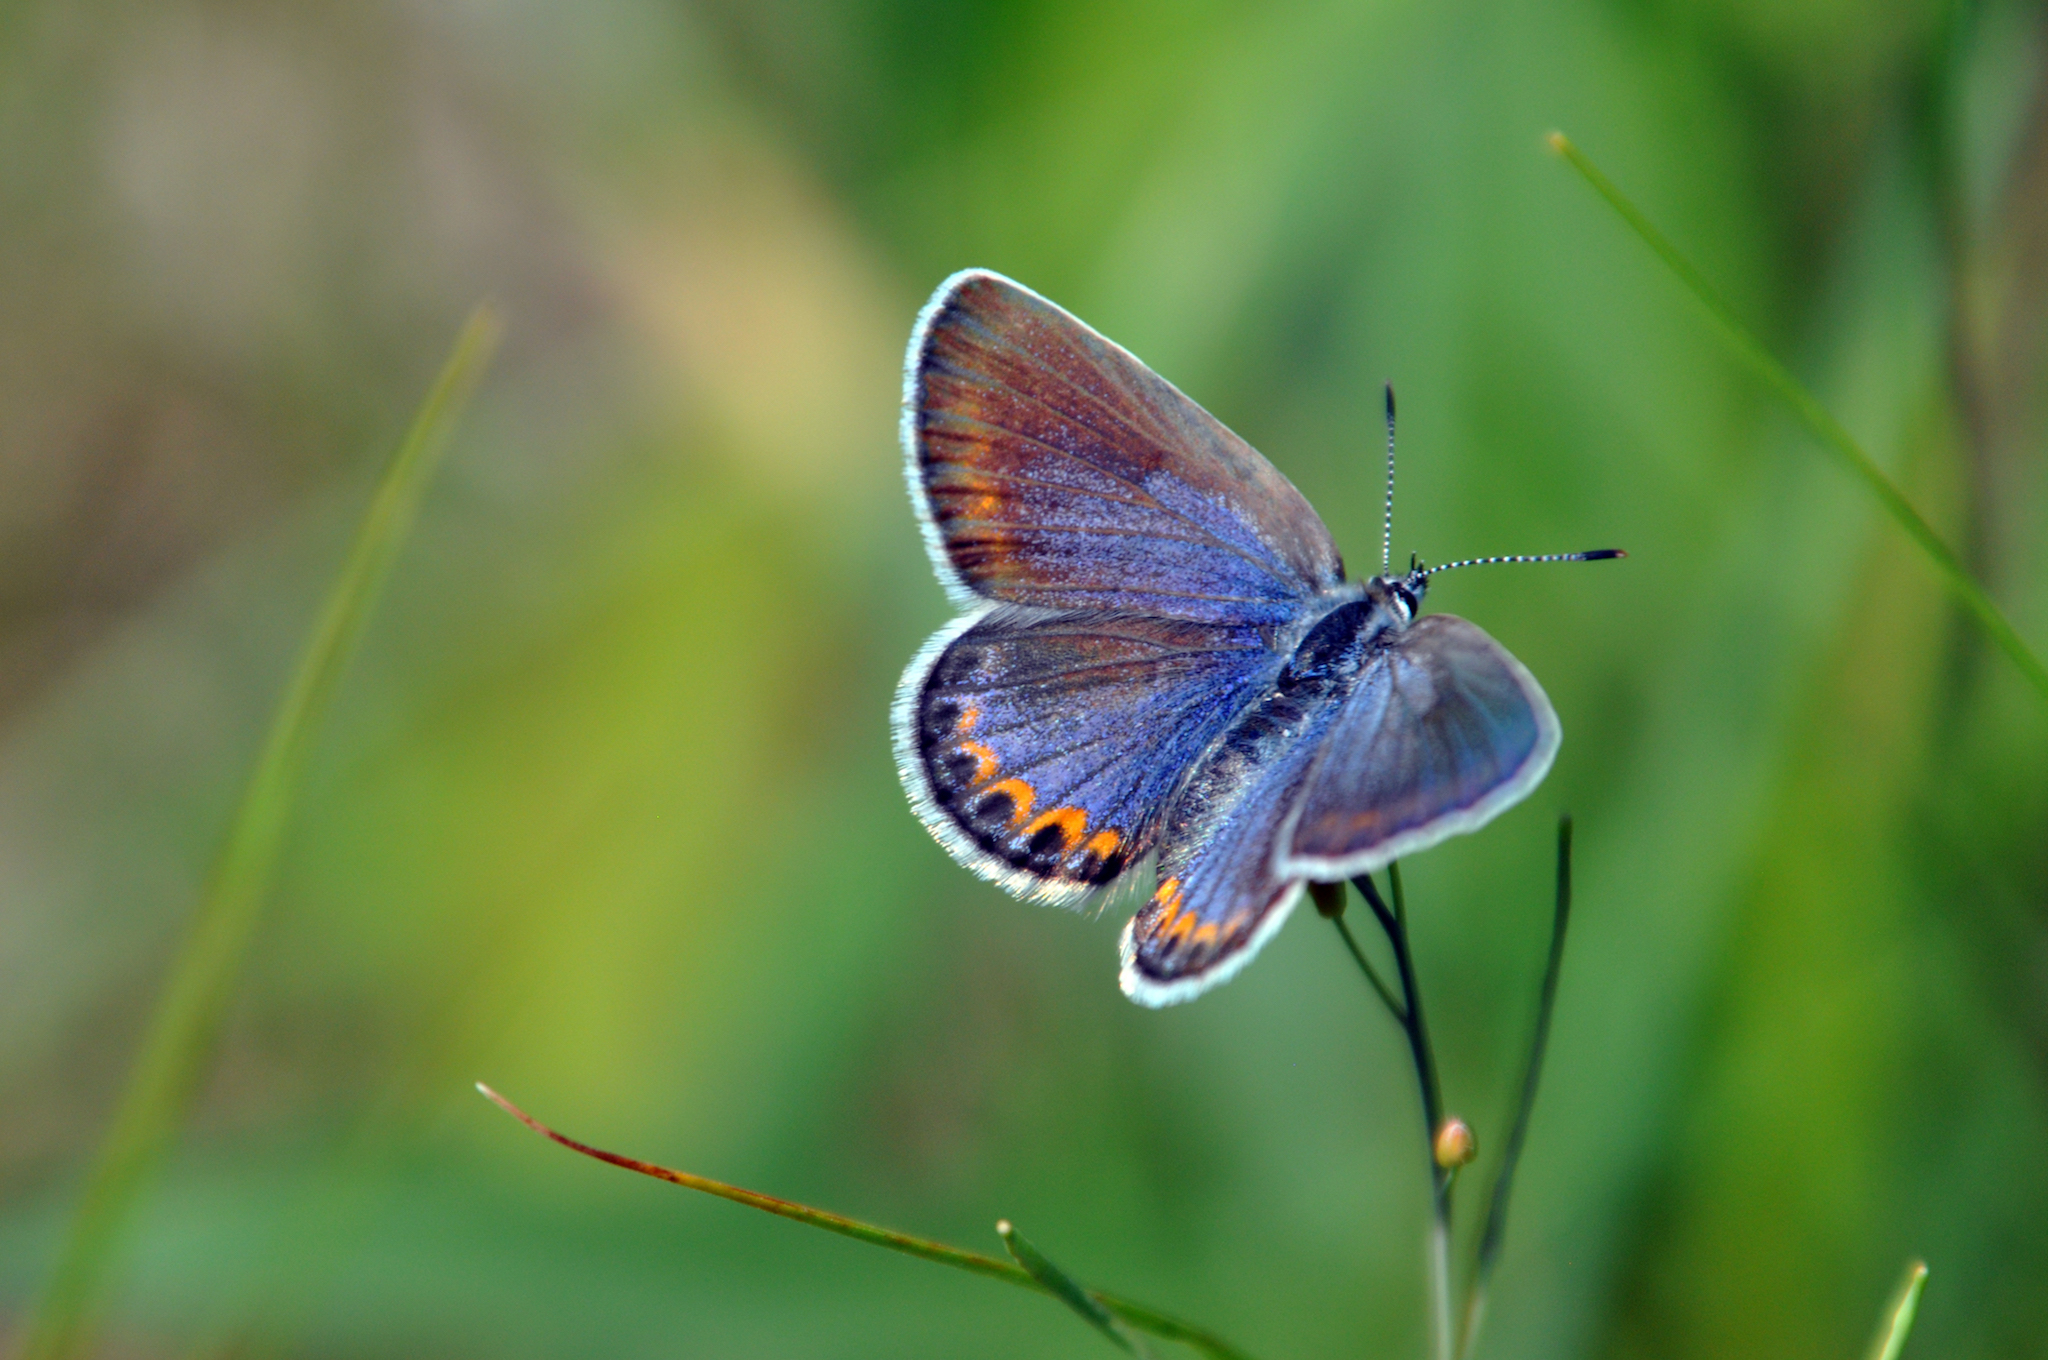 These Super Rare Butterflies Thrive On Army Bases The U S Military Is Helping Them